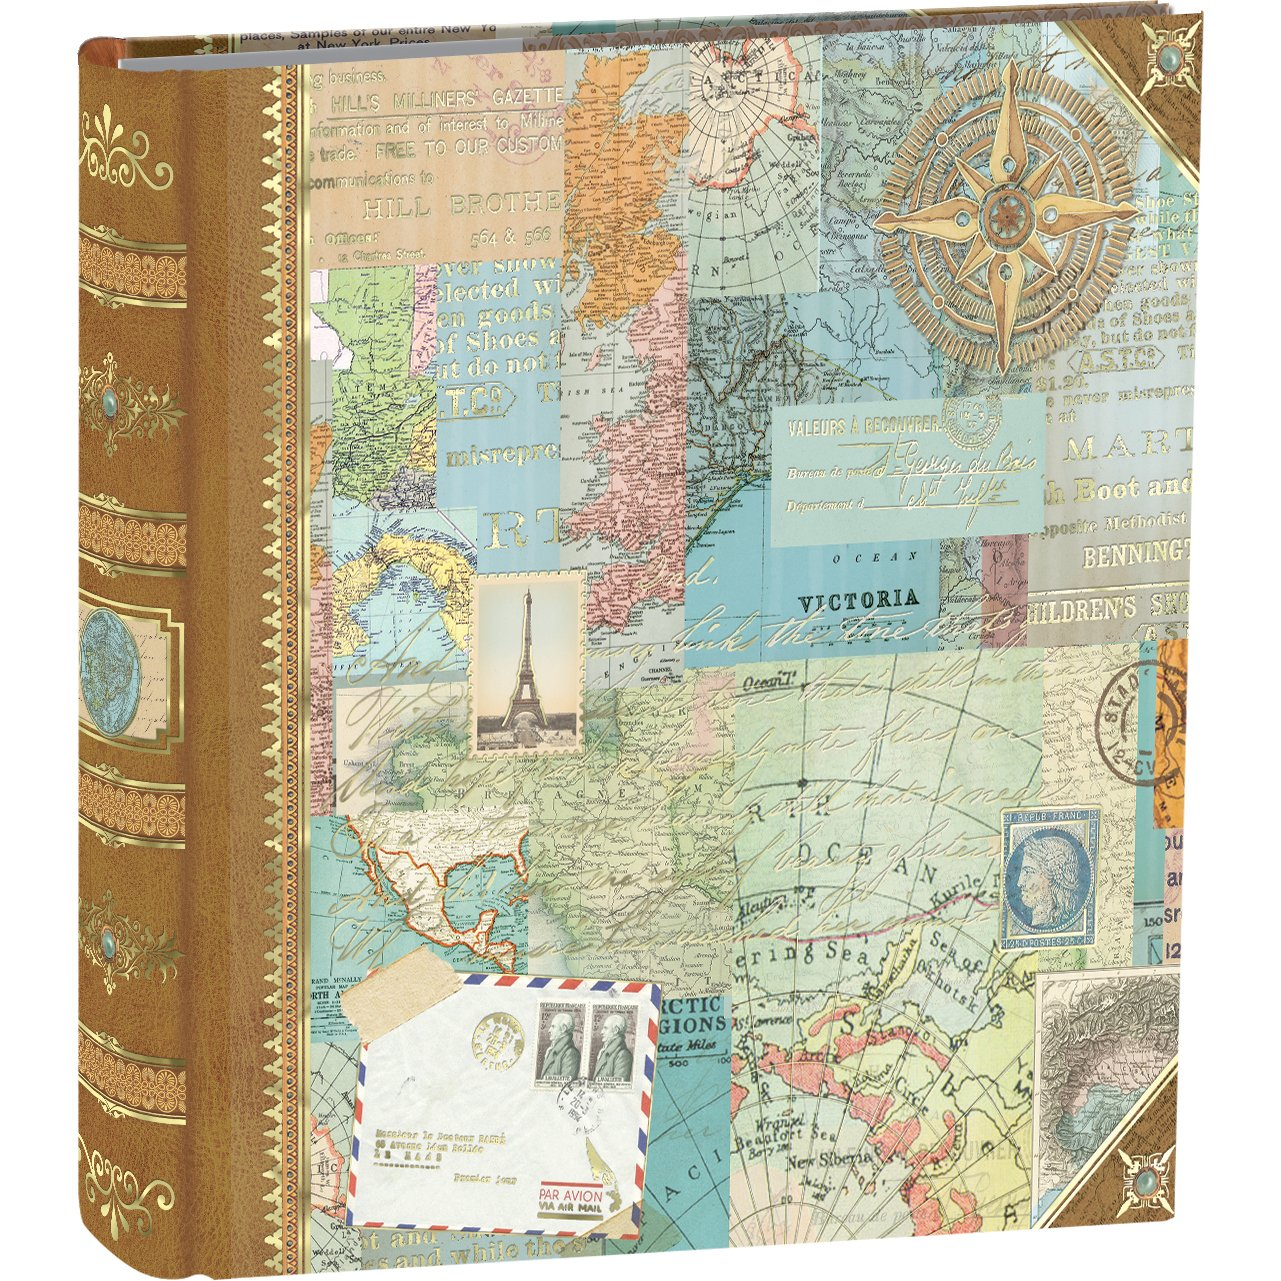 World Atlas Punch Studio Photo Album by Punch Studio